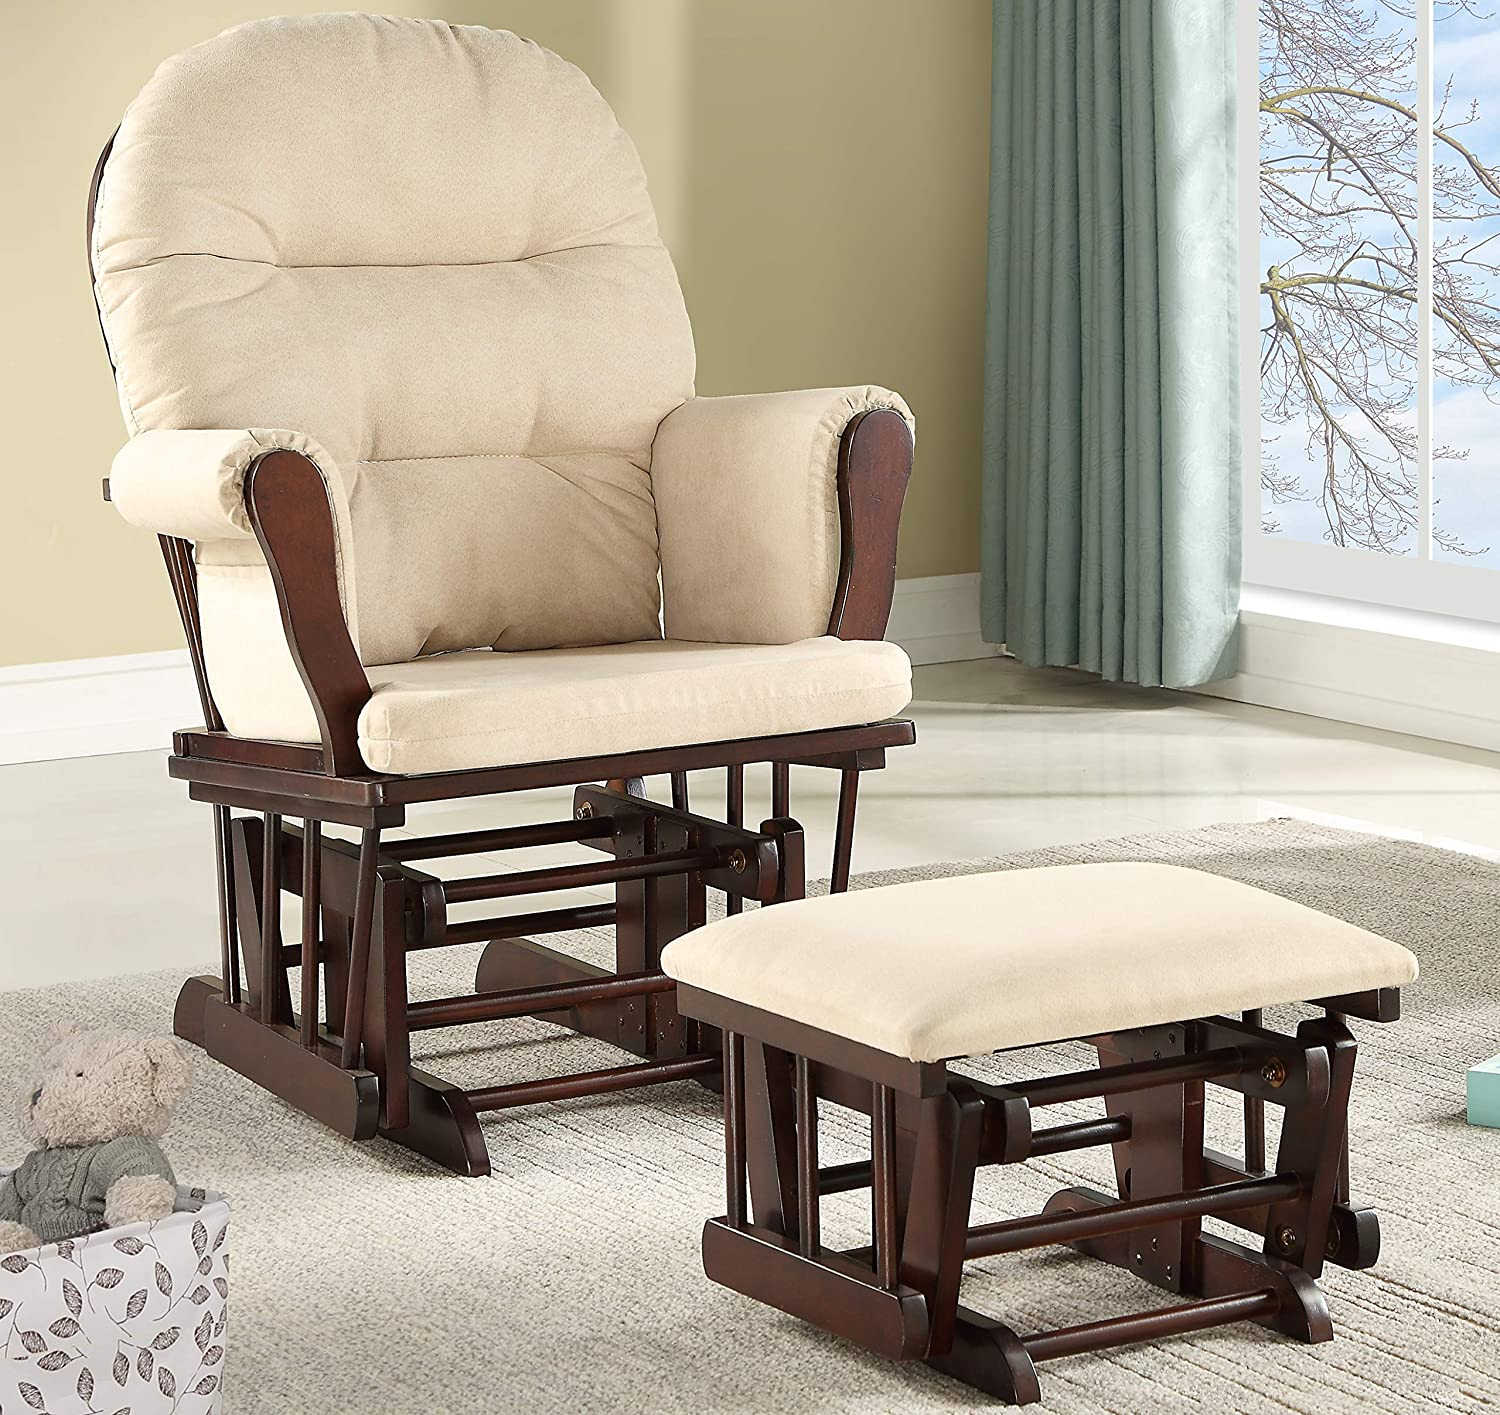 Espresso//Beige Lennox Furniture Emily Glider Chair and Ottoman Combo